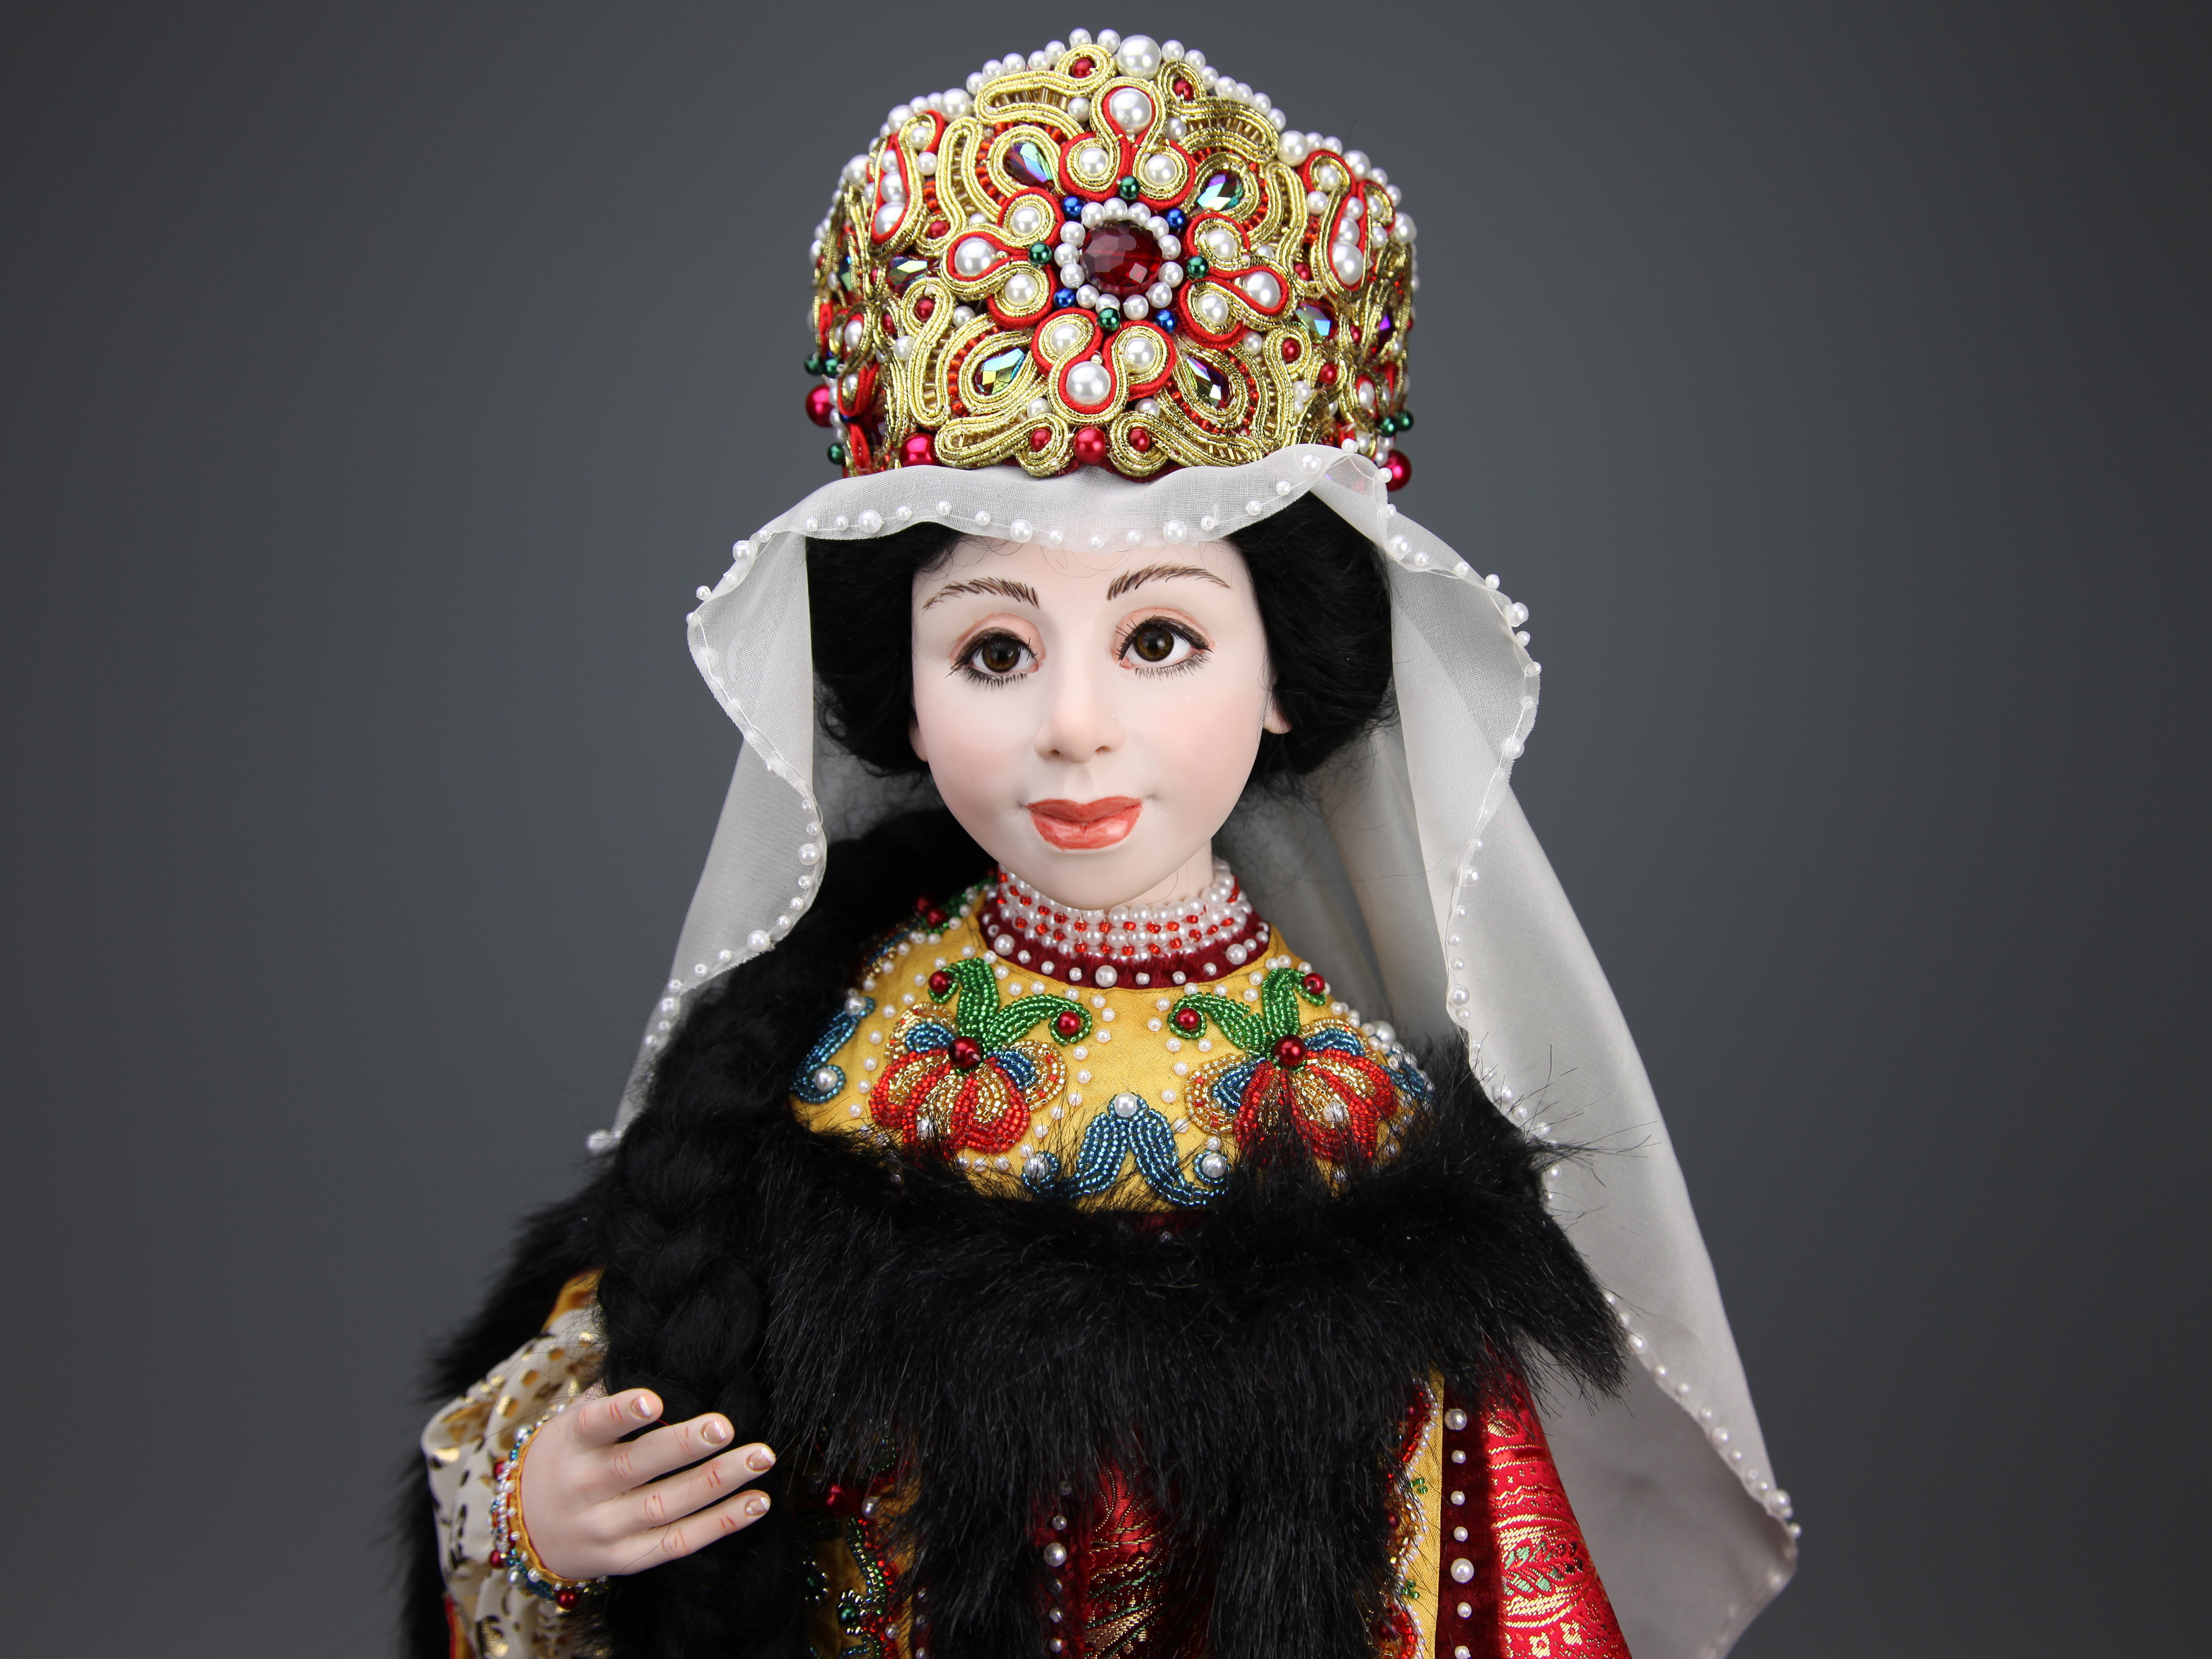 Katherine - One-of-a-kind Art Doll by Tanya Abaimova